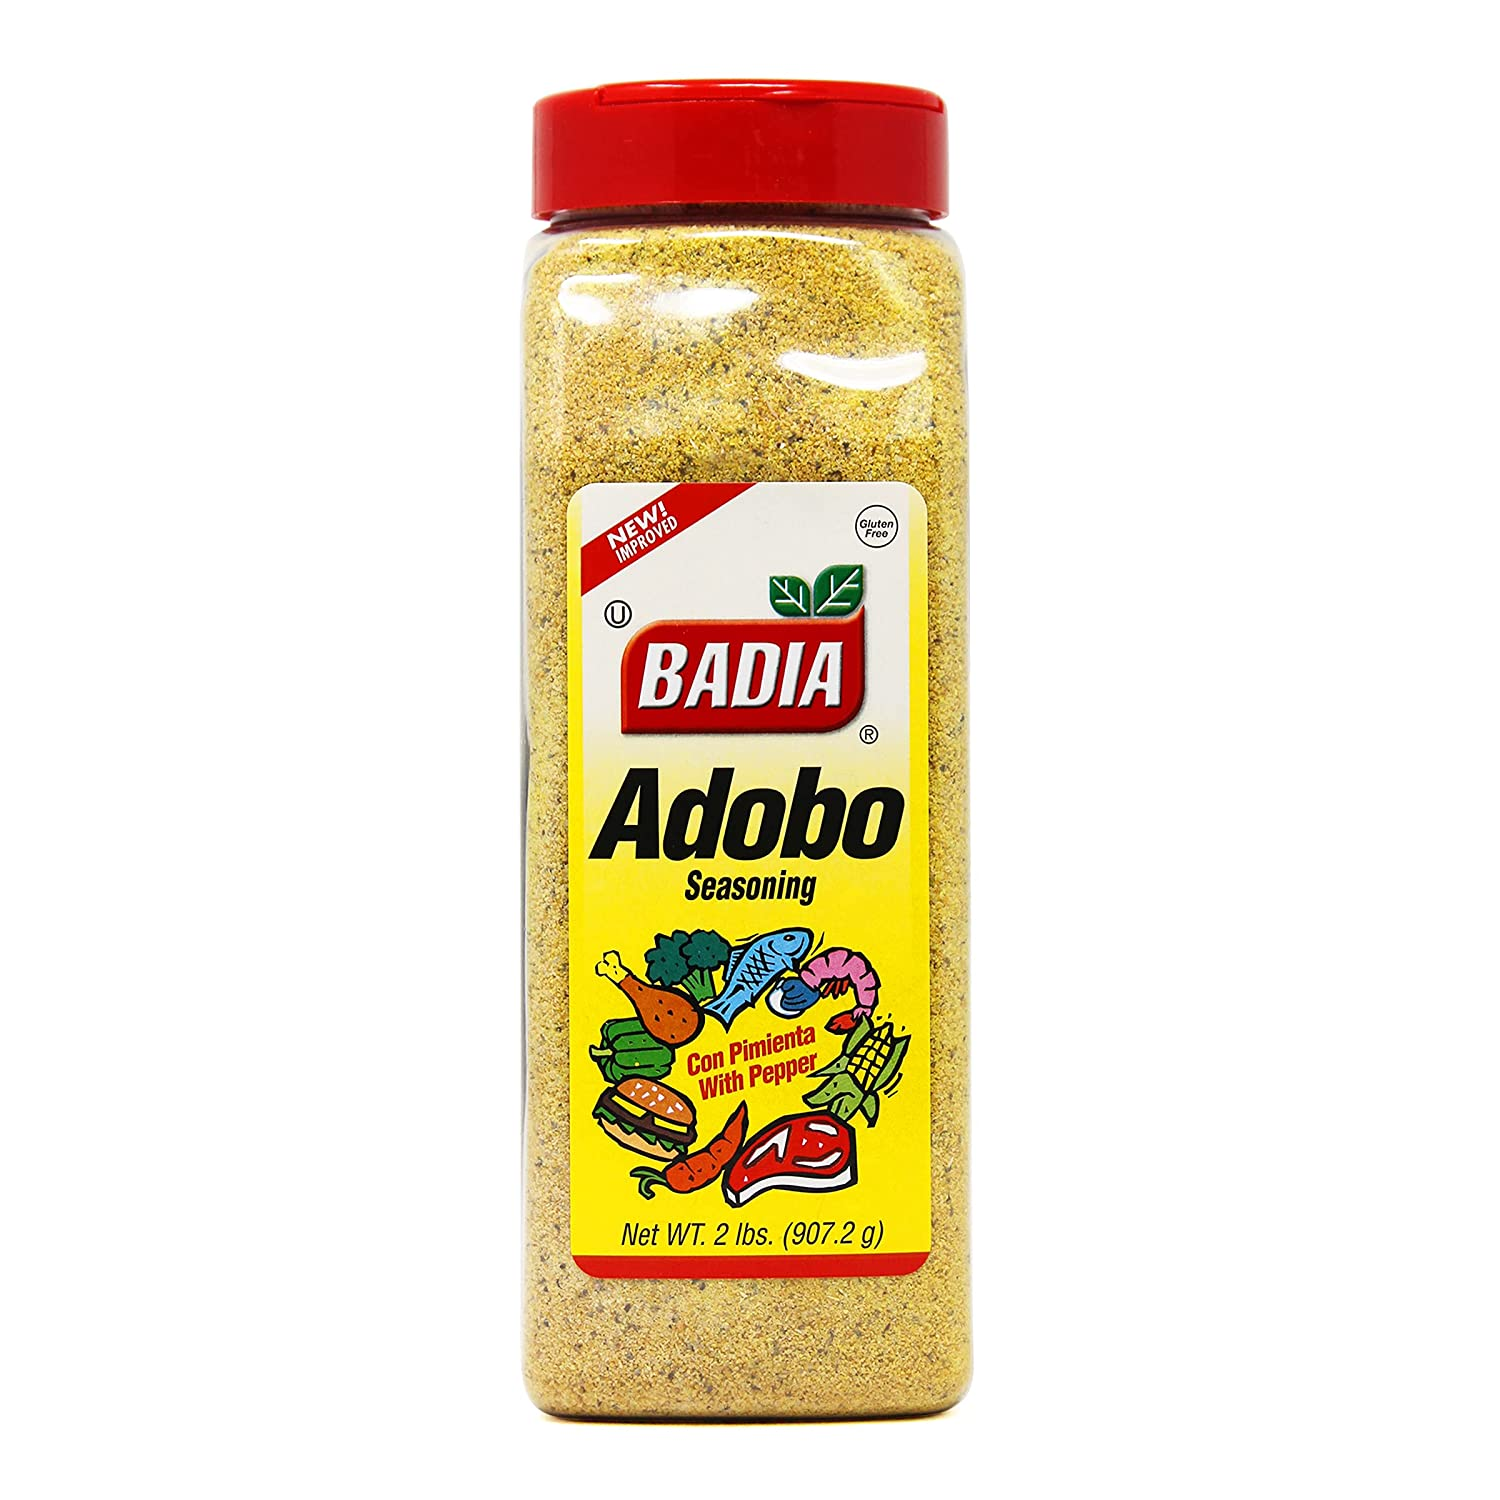 Badia Adobo with Pepper New product! New type 2 Easy-to-use Pack Pound of 6